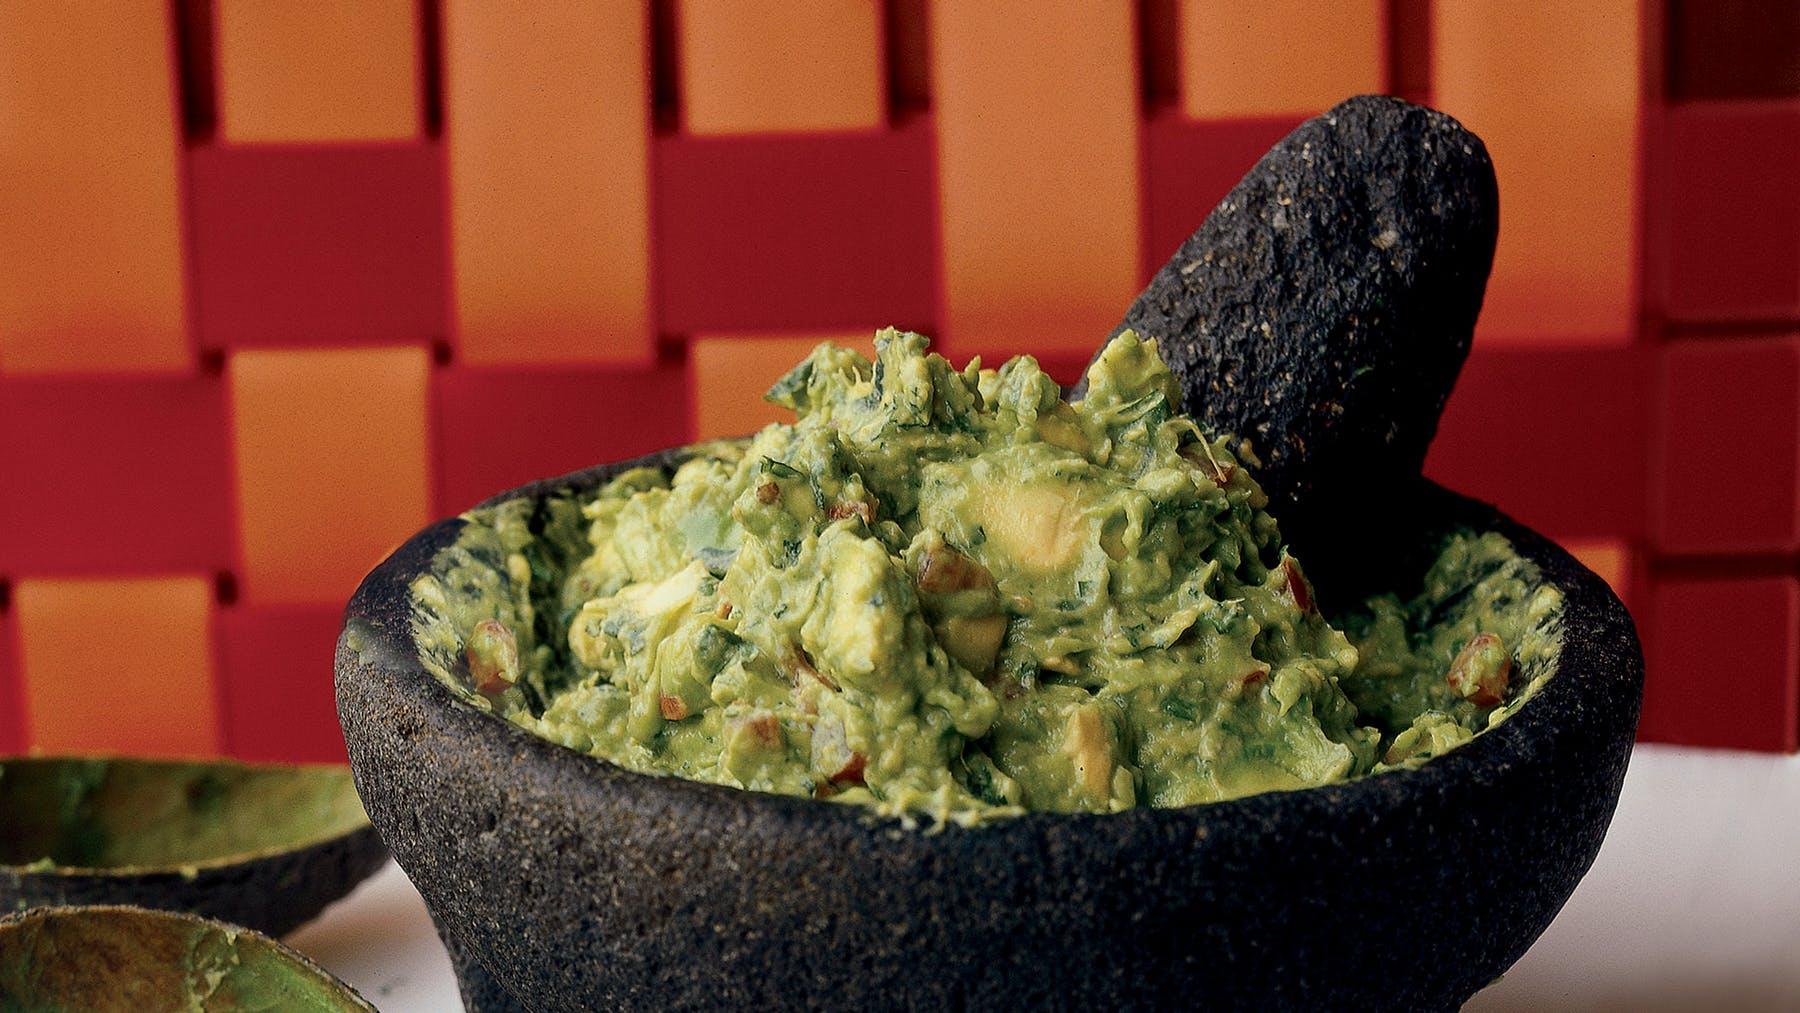 A bowl of guacamole.